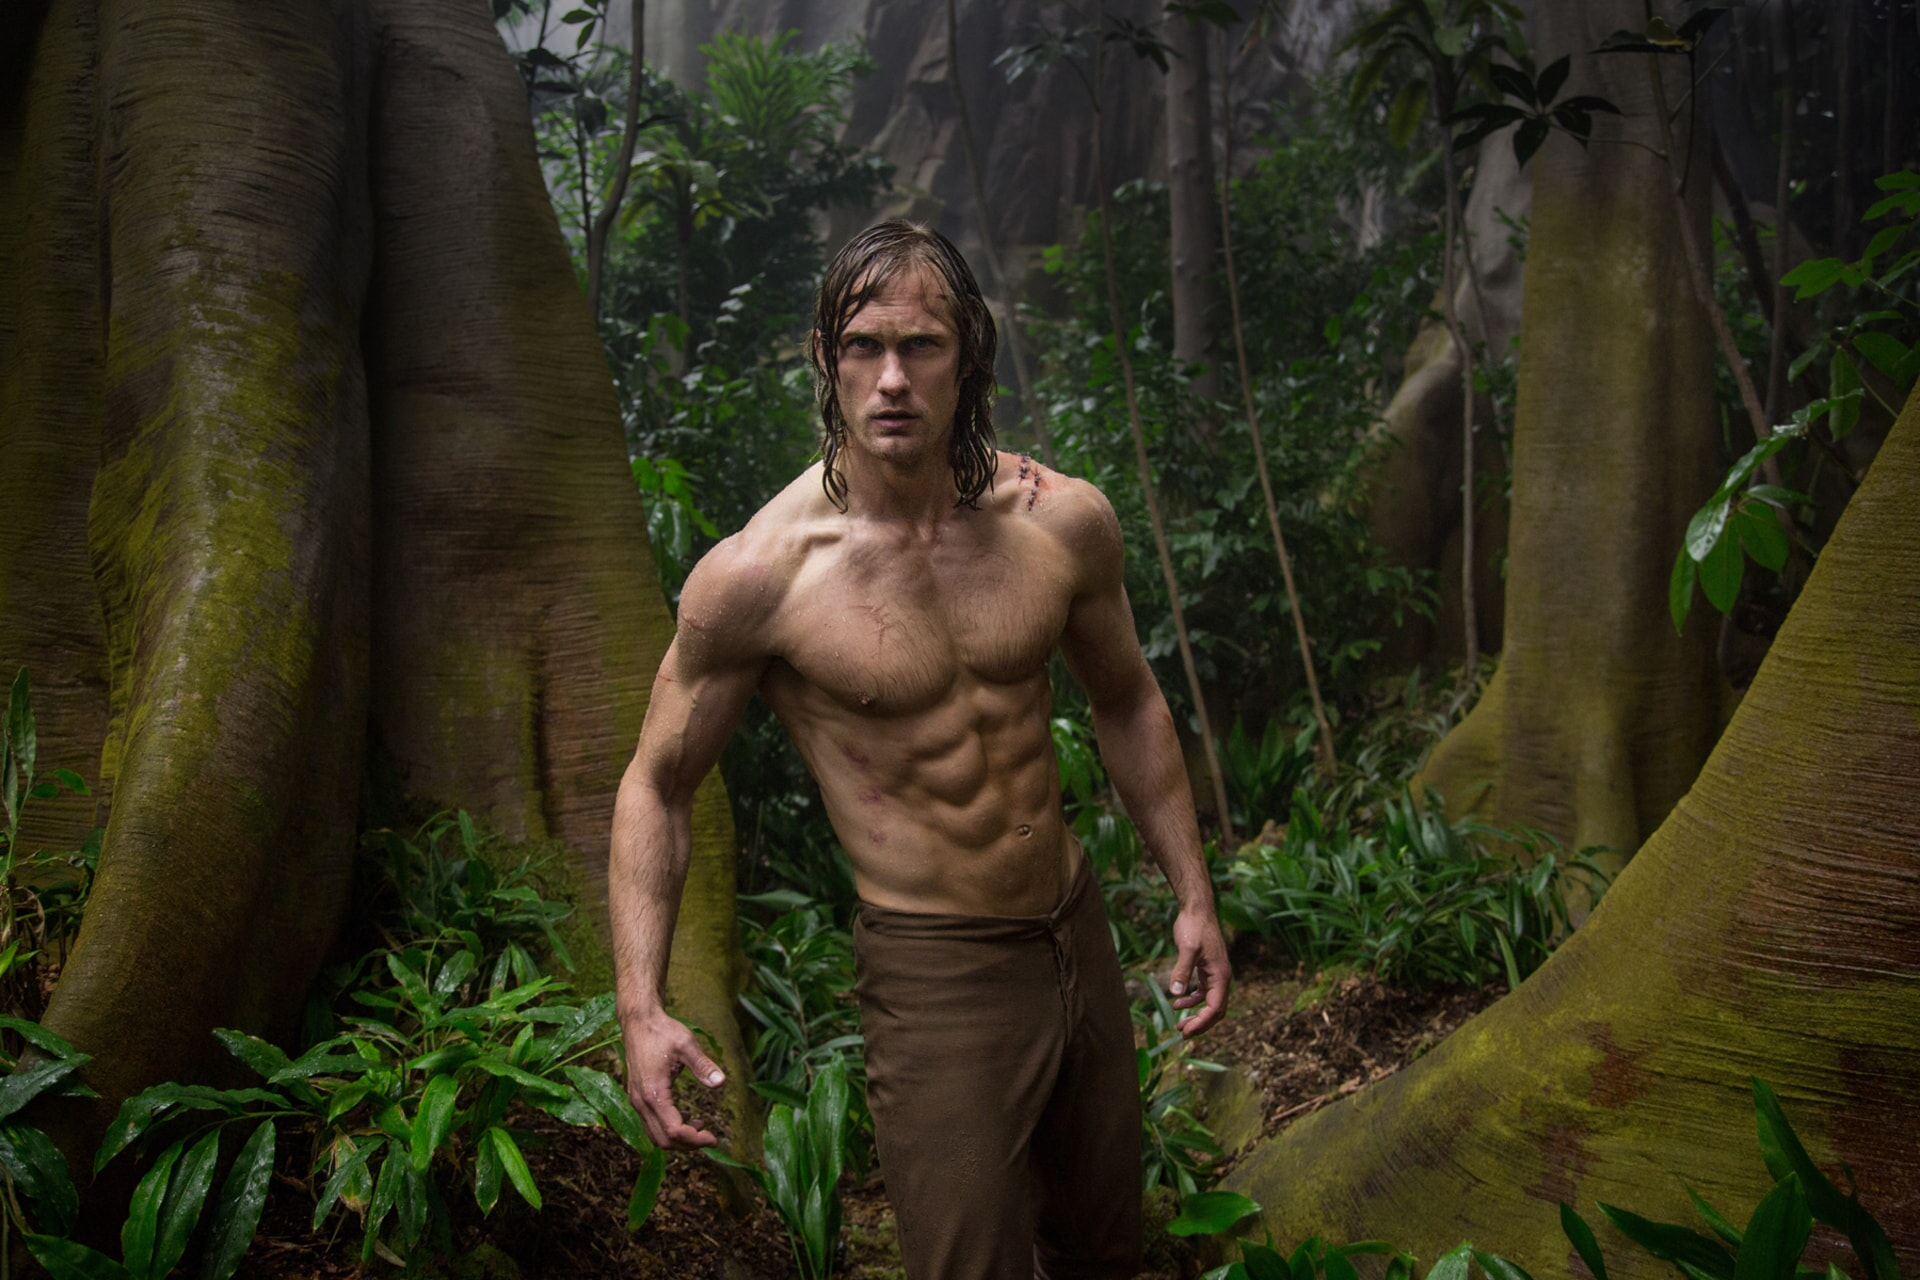 Shirtless Alexander Skarsgård as Tarzan standing in the jungle